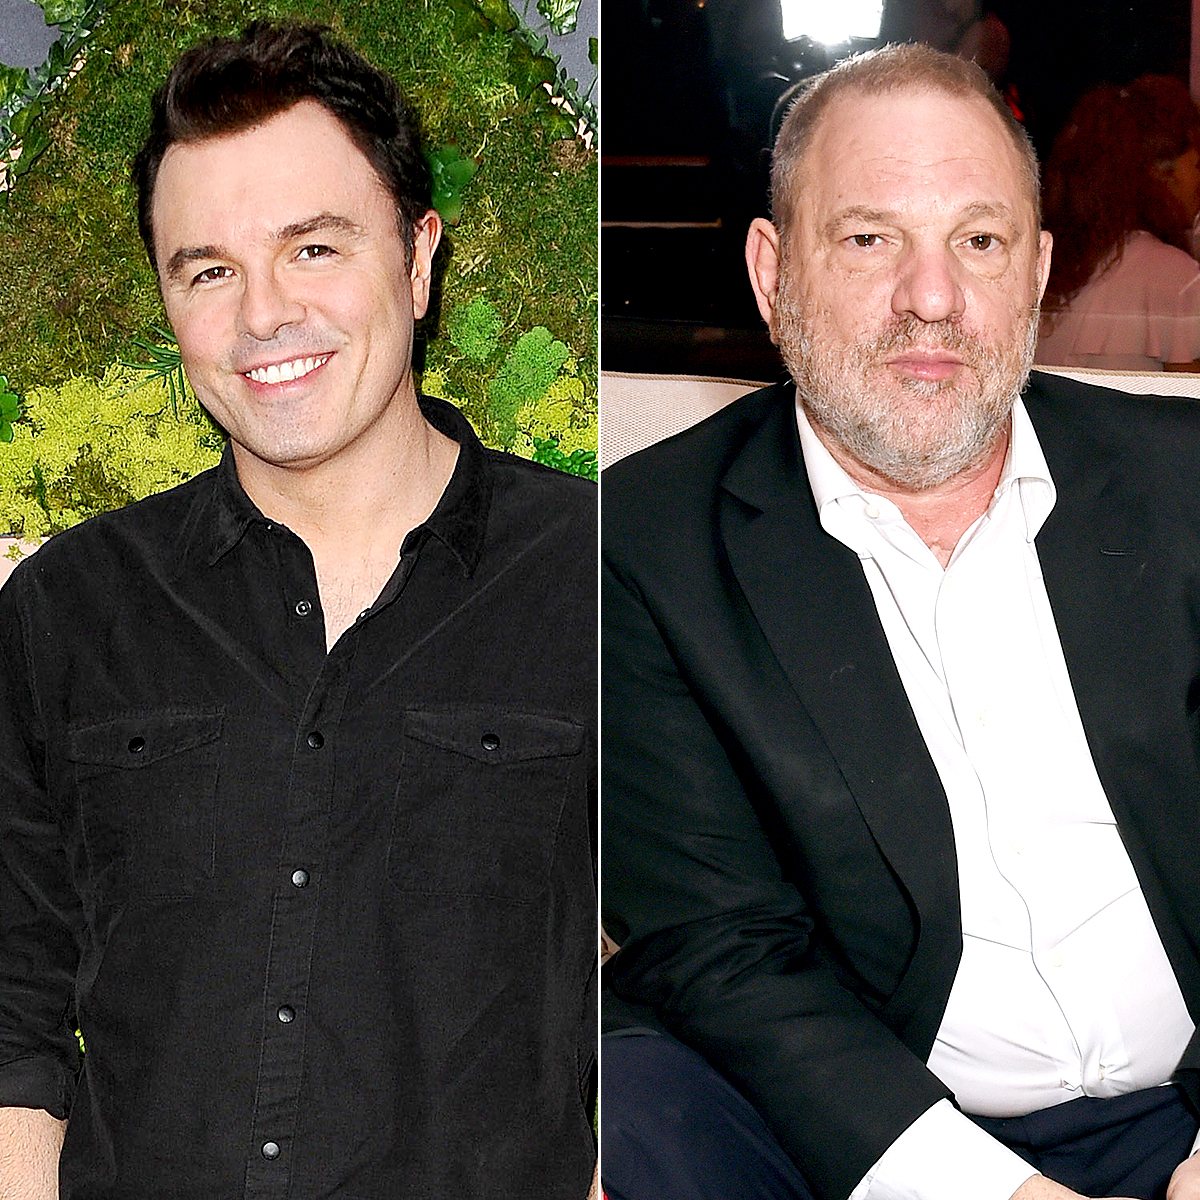 Seth MacFarlane and Harvey Weinstein